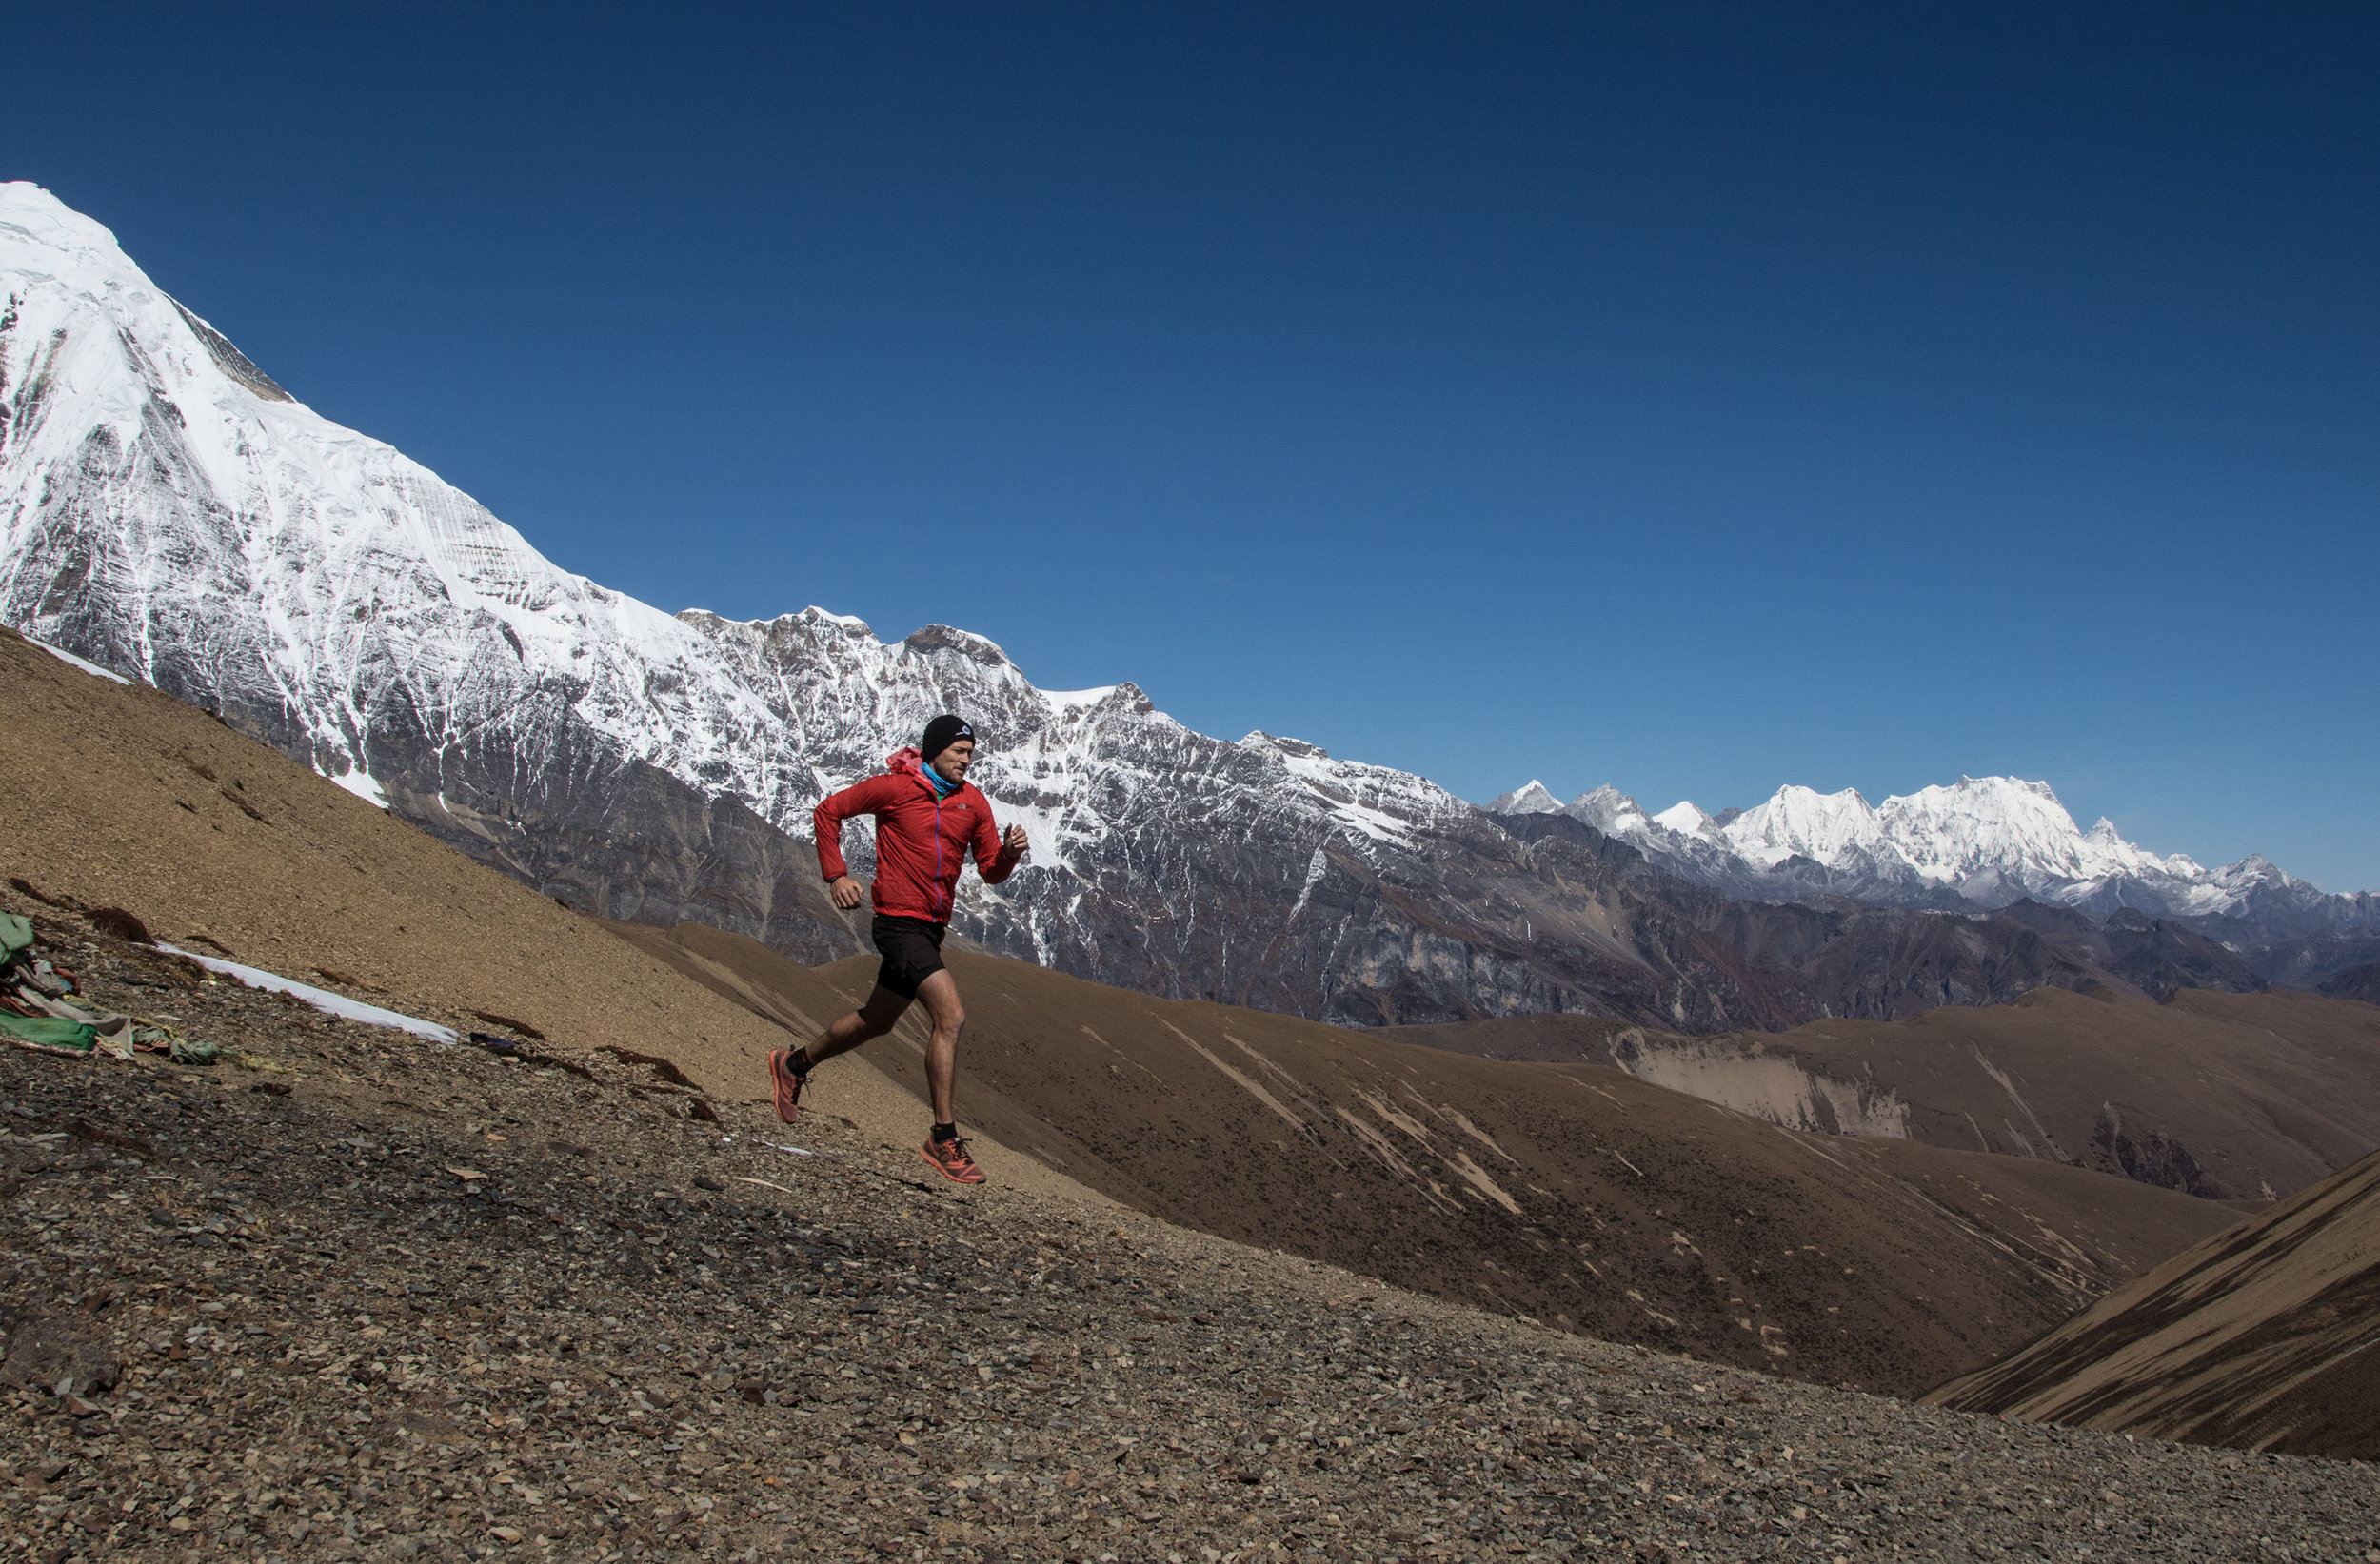 Bhutan Snowman Run - 4 - 16 November 2019THIS COULD JUST BE THE EXPERIENCE YOU TALK ABOUT UNTIL THE END OF YOUR DAYS!A trail run expedition along one of the most coveted, but least trammelled, trails in the world: Jomolhari / Lasa Gaya, Bhutan, through the land of Shangri La and Gross Domestic Happiness. It'll make you happy, 100% guaranteed!EXPRESSION OF INTEREST BEING TAKEN